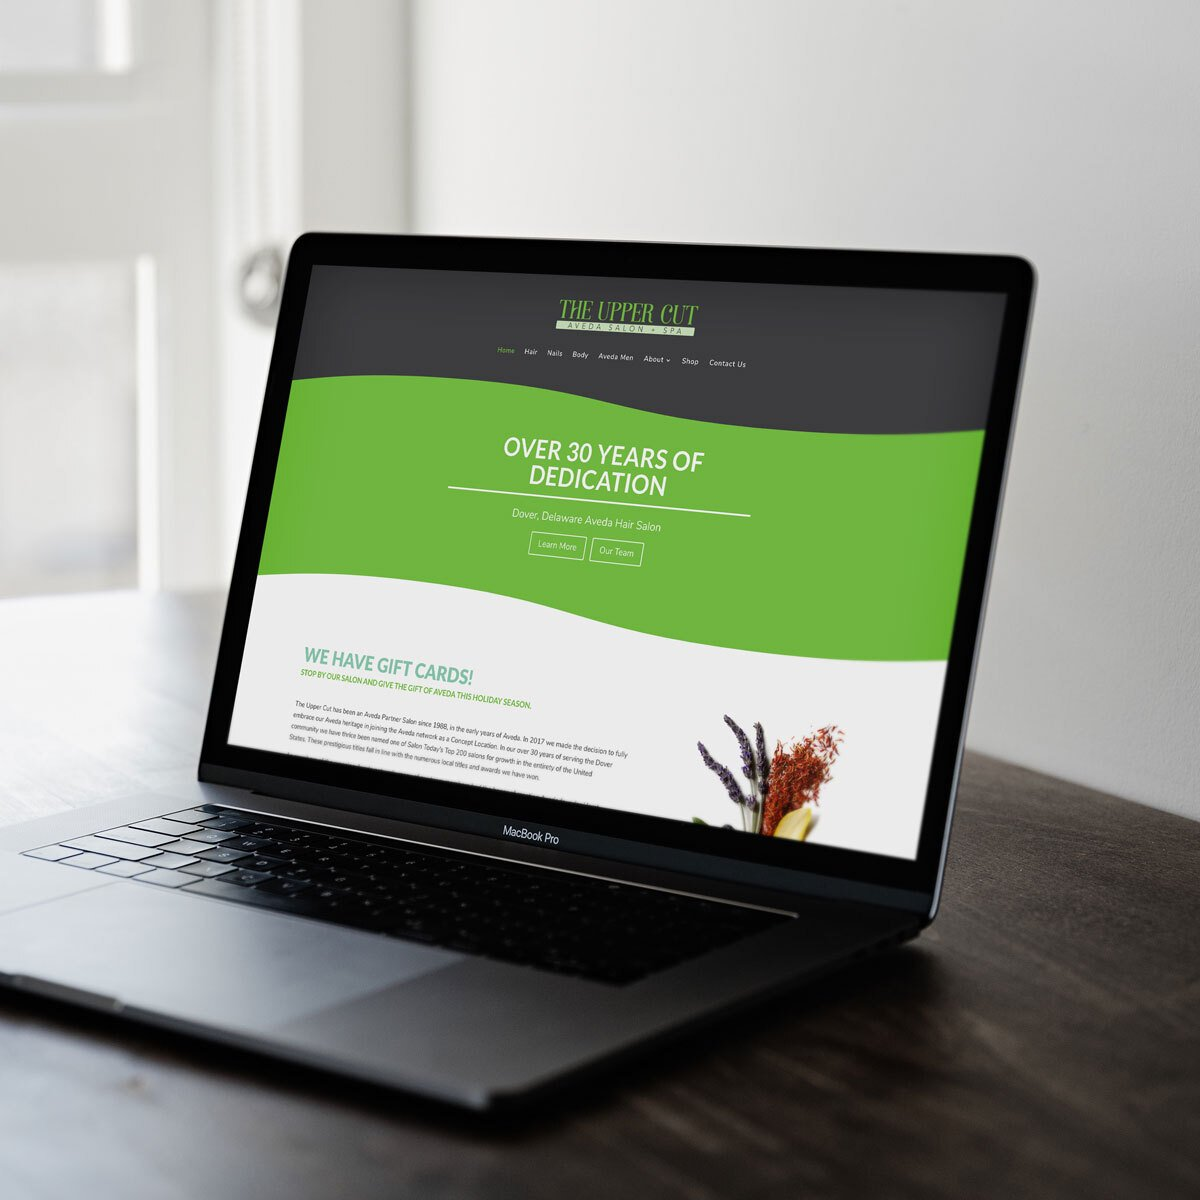 The Upper Cut Salon Web Design by BrandSwan, a web design company